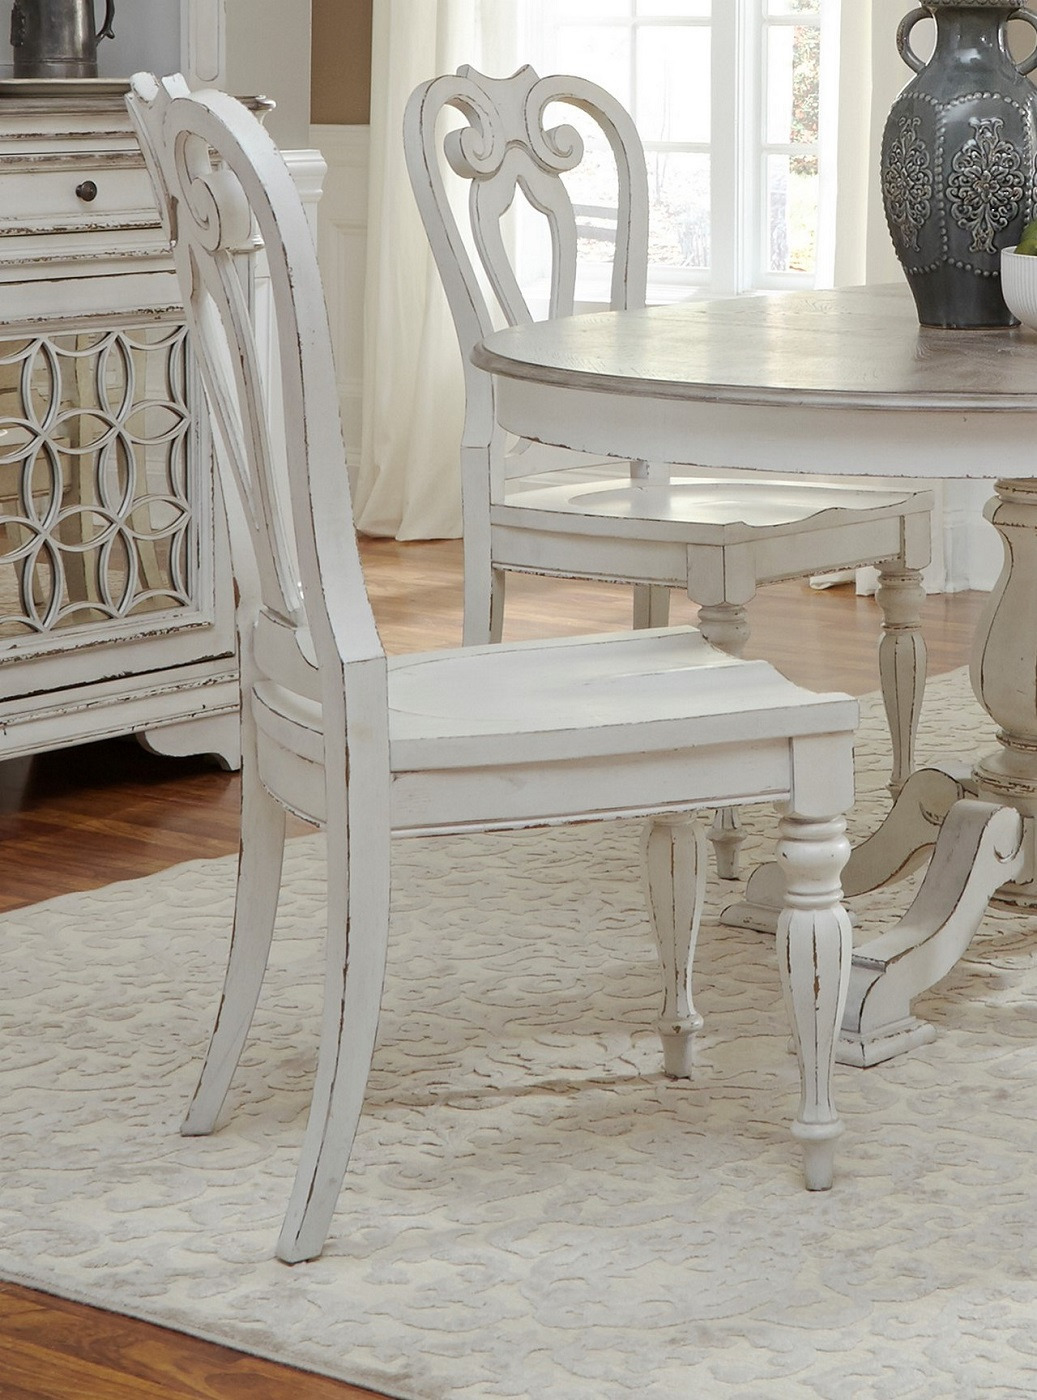 set of 2 magnolia classic wooden splat back side chairs in antique white finish 13